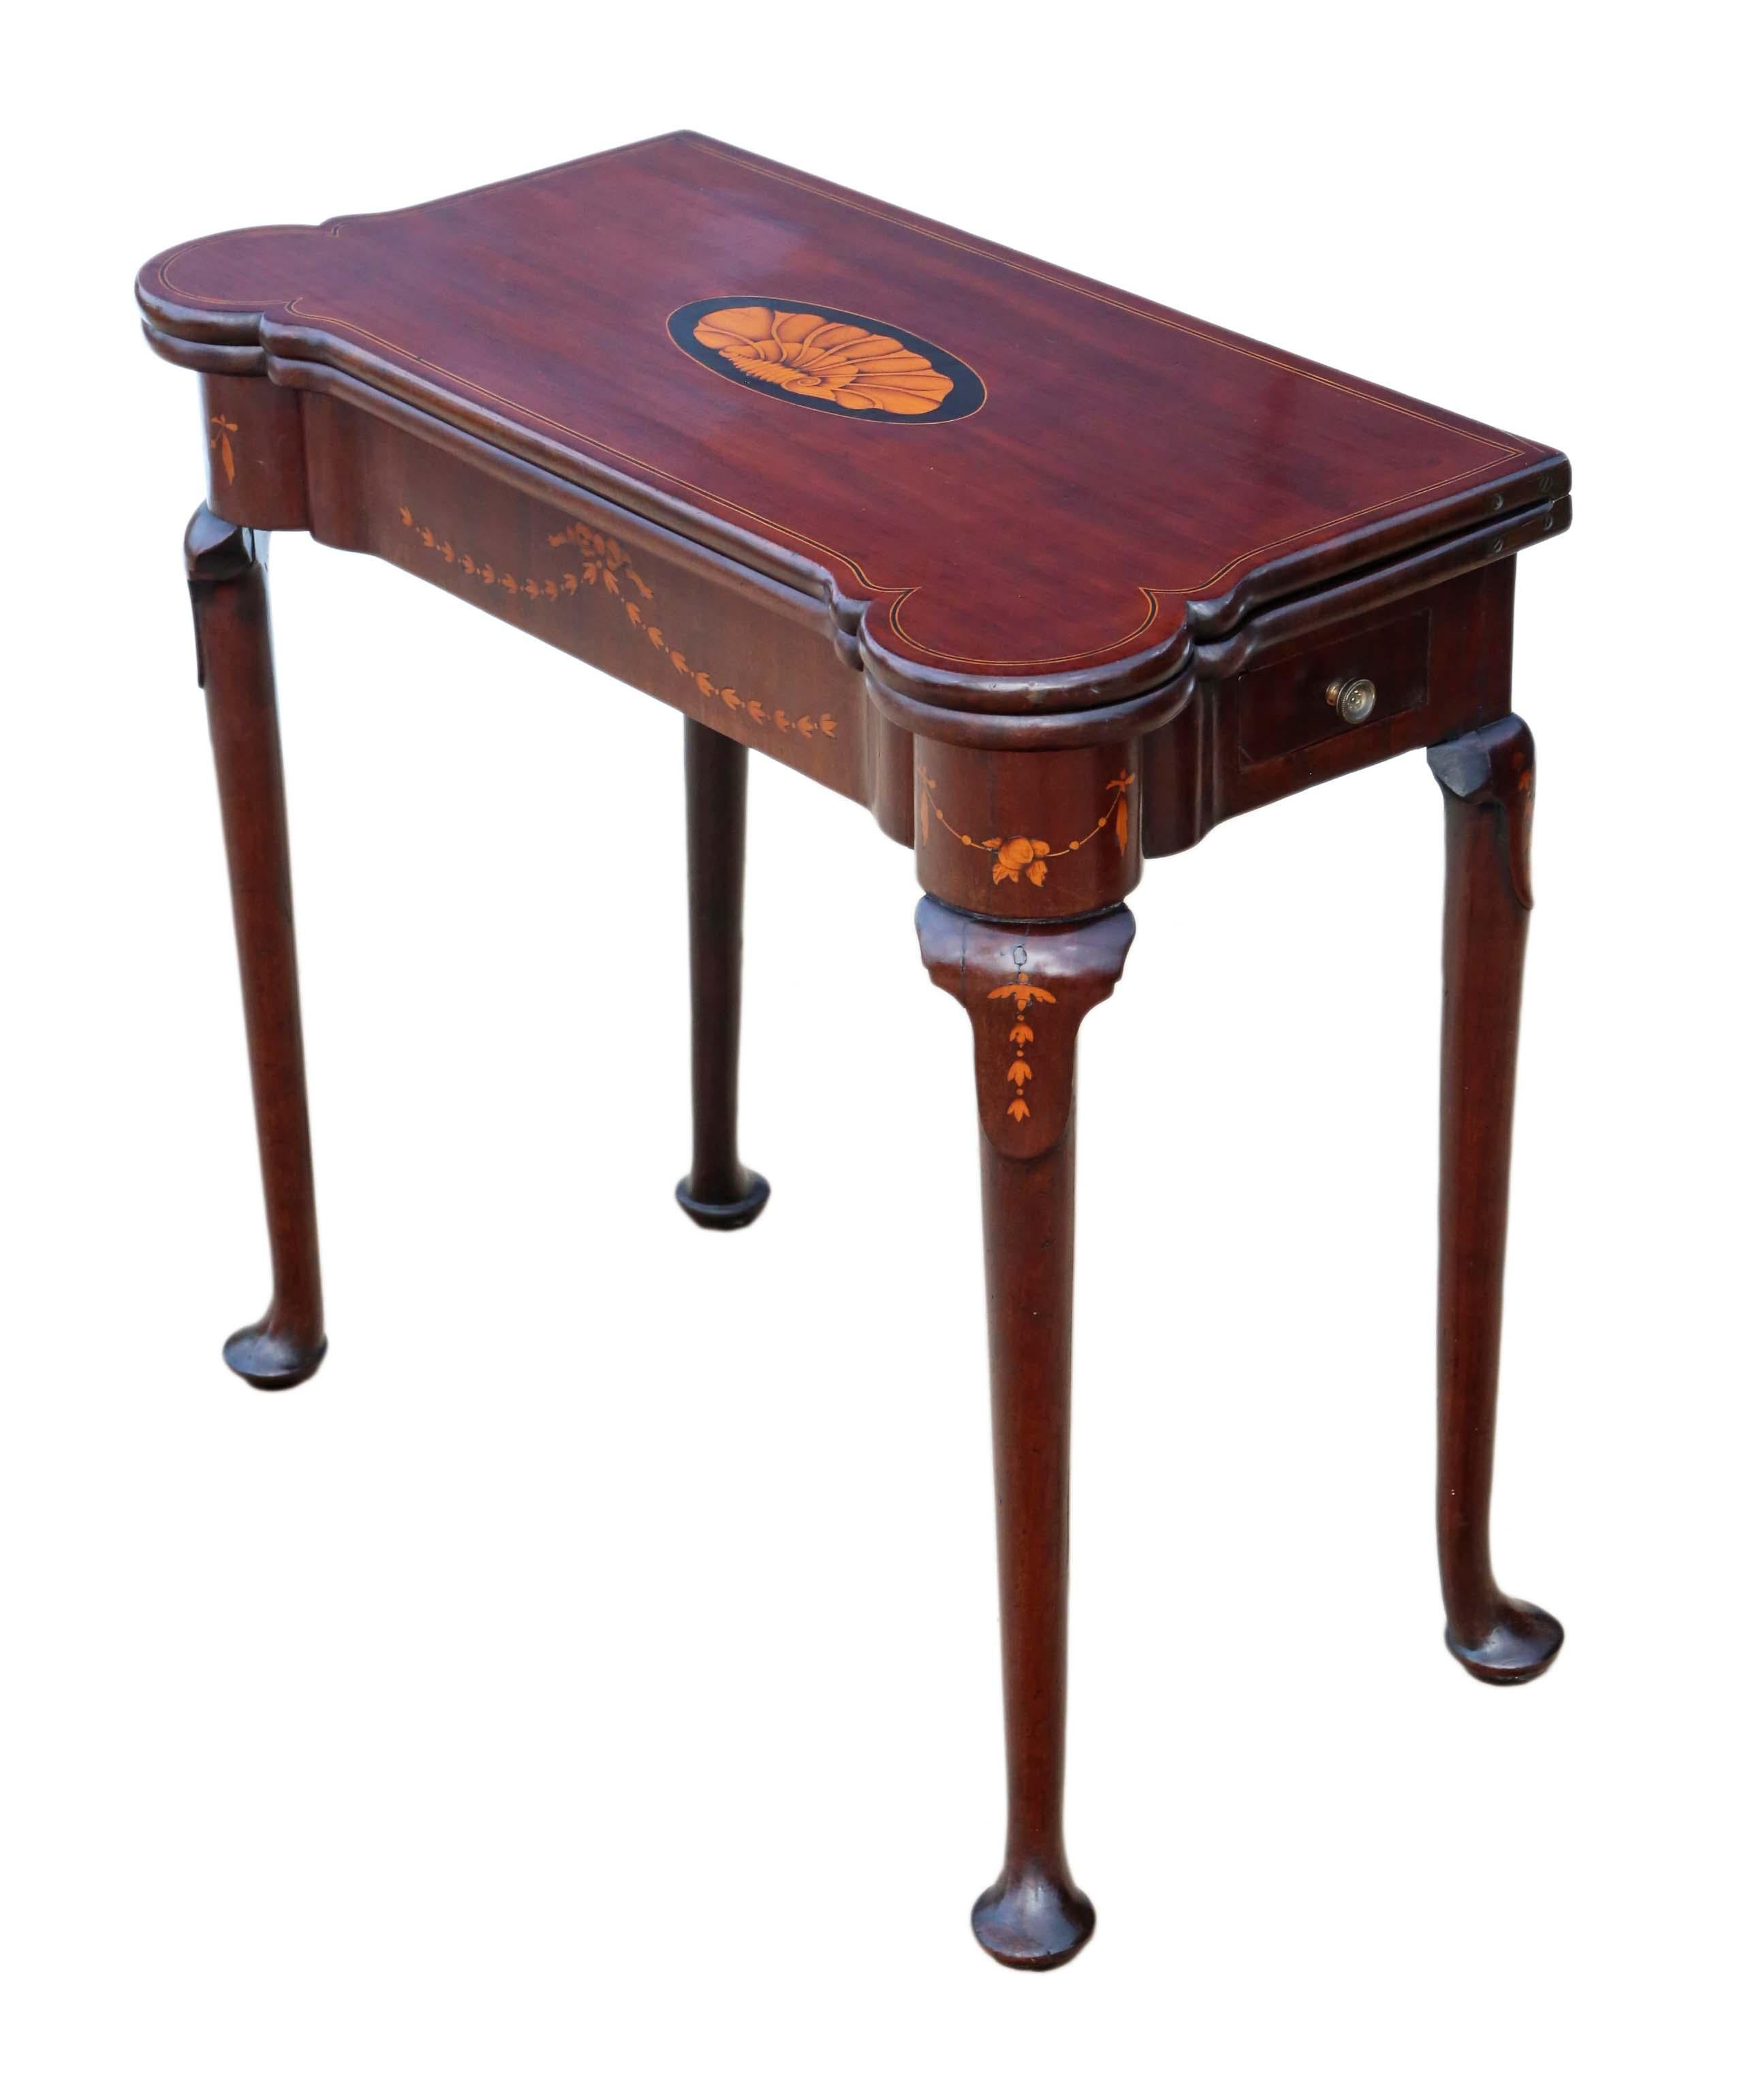 Georgian Ii Circa 1750 Inlaid Mahogany Folding Card Table Tea Console